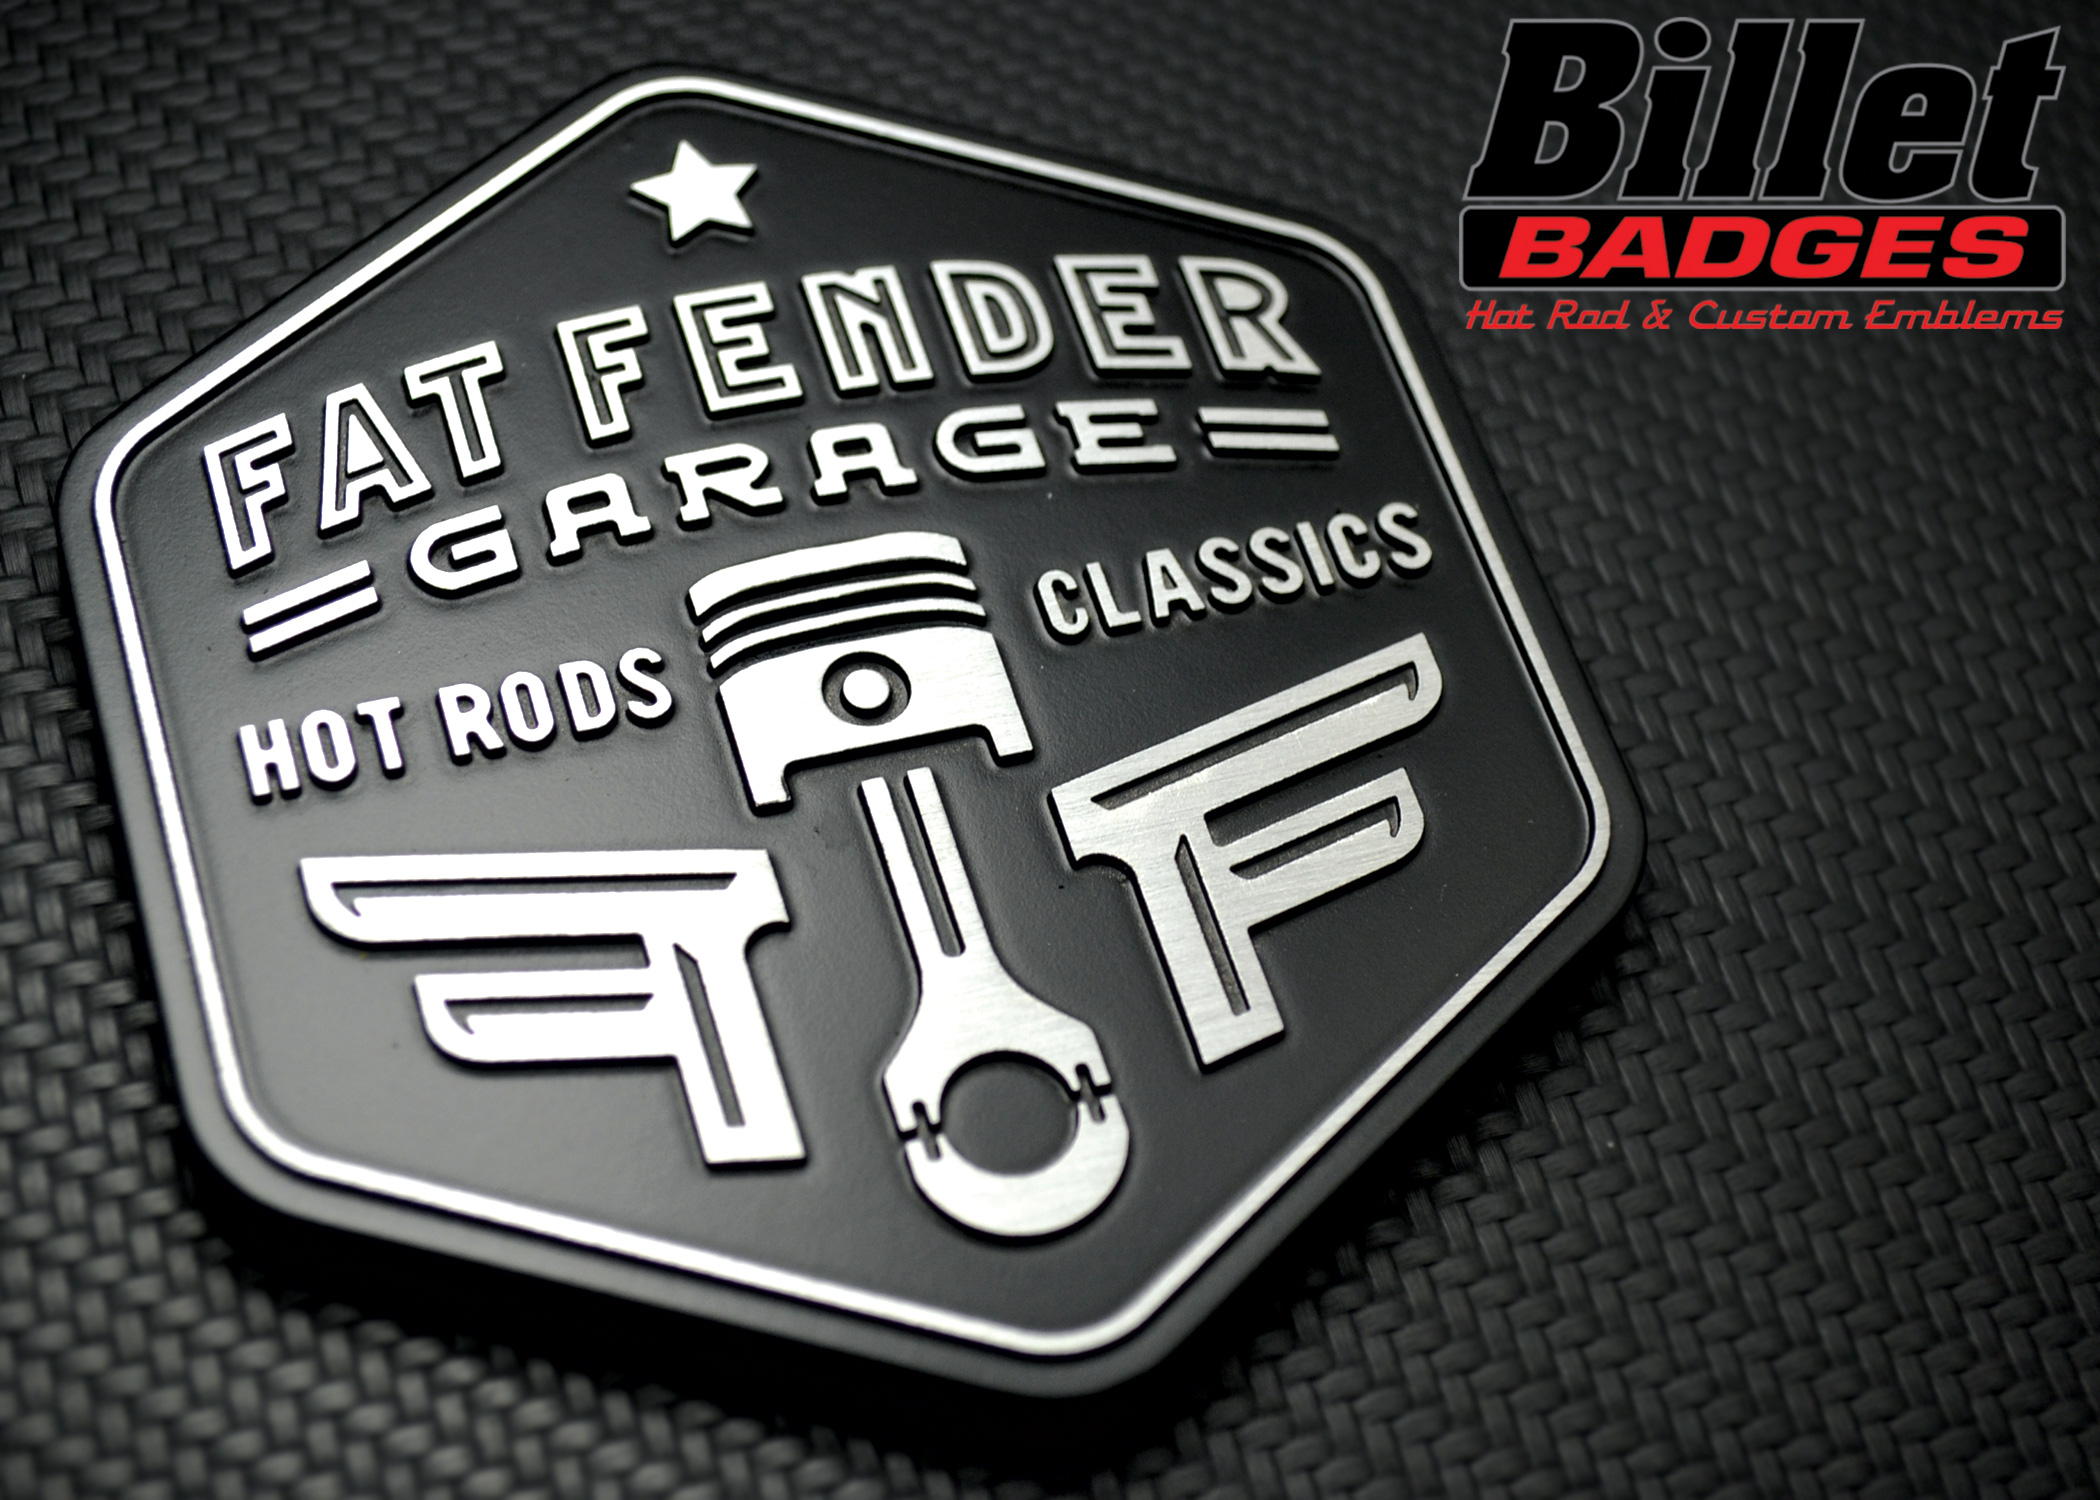 Fat Fender Garage